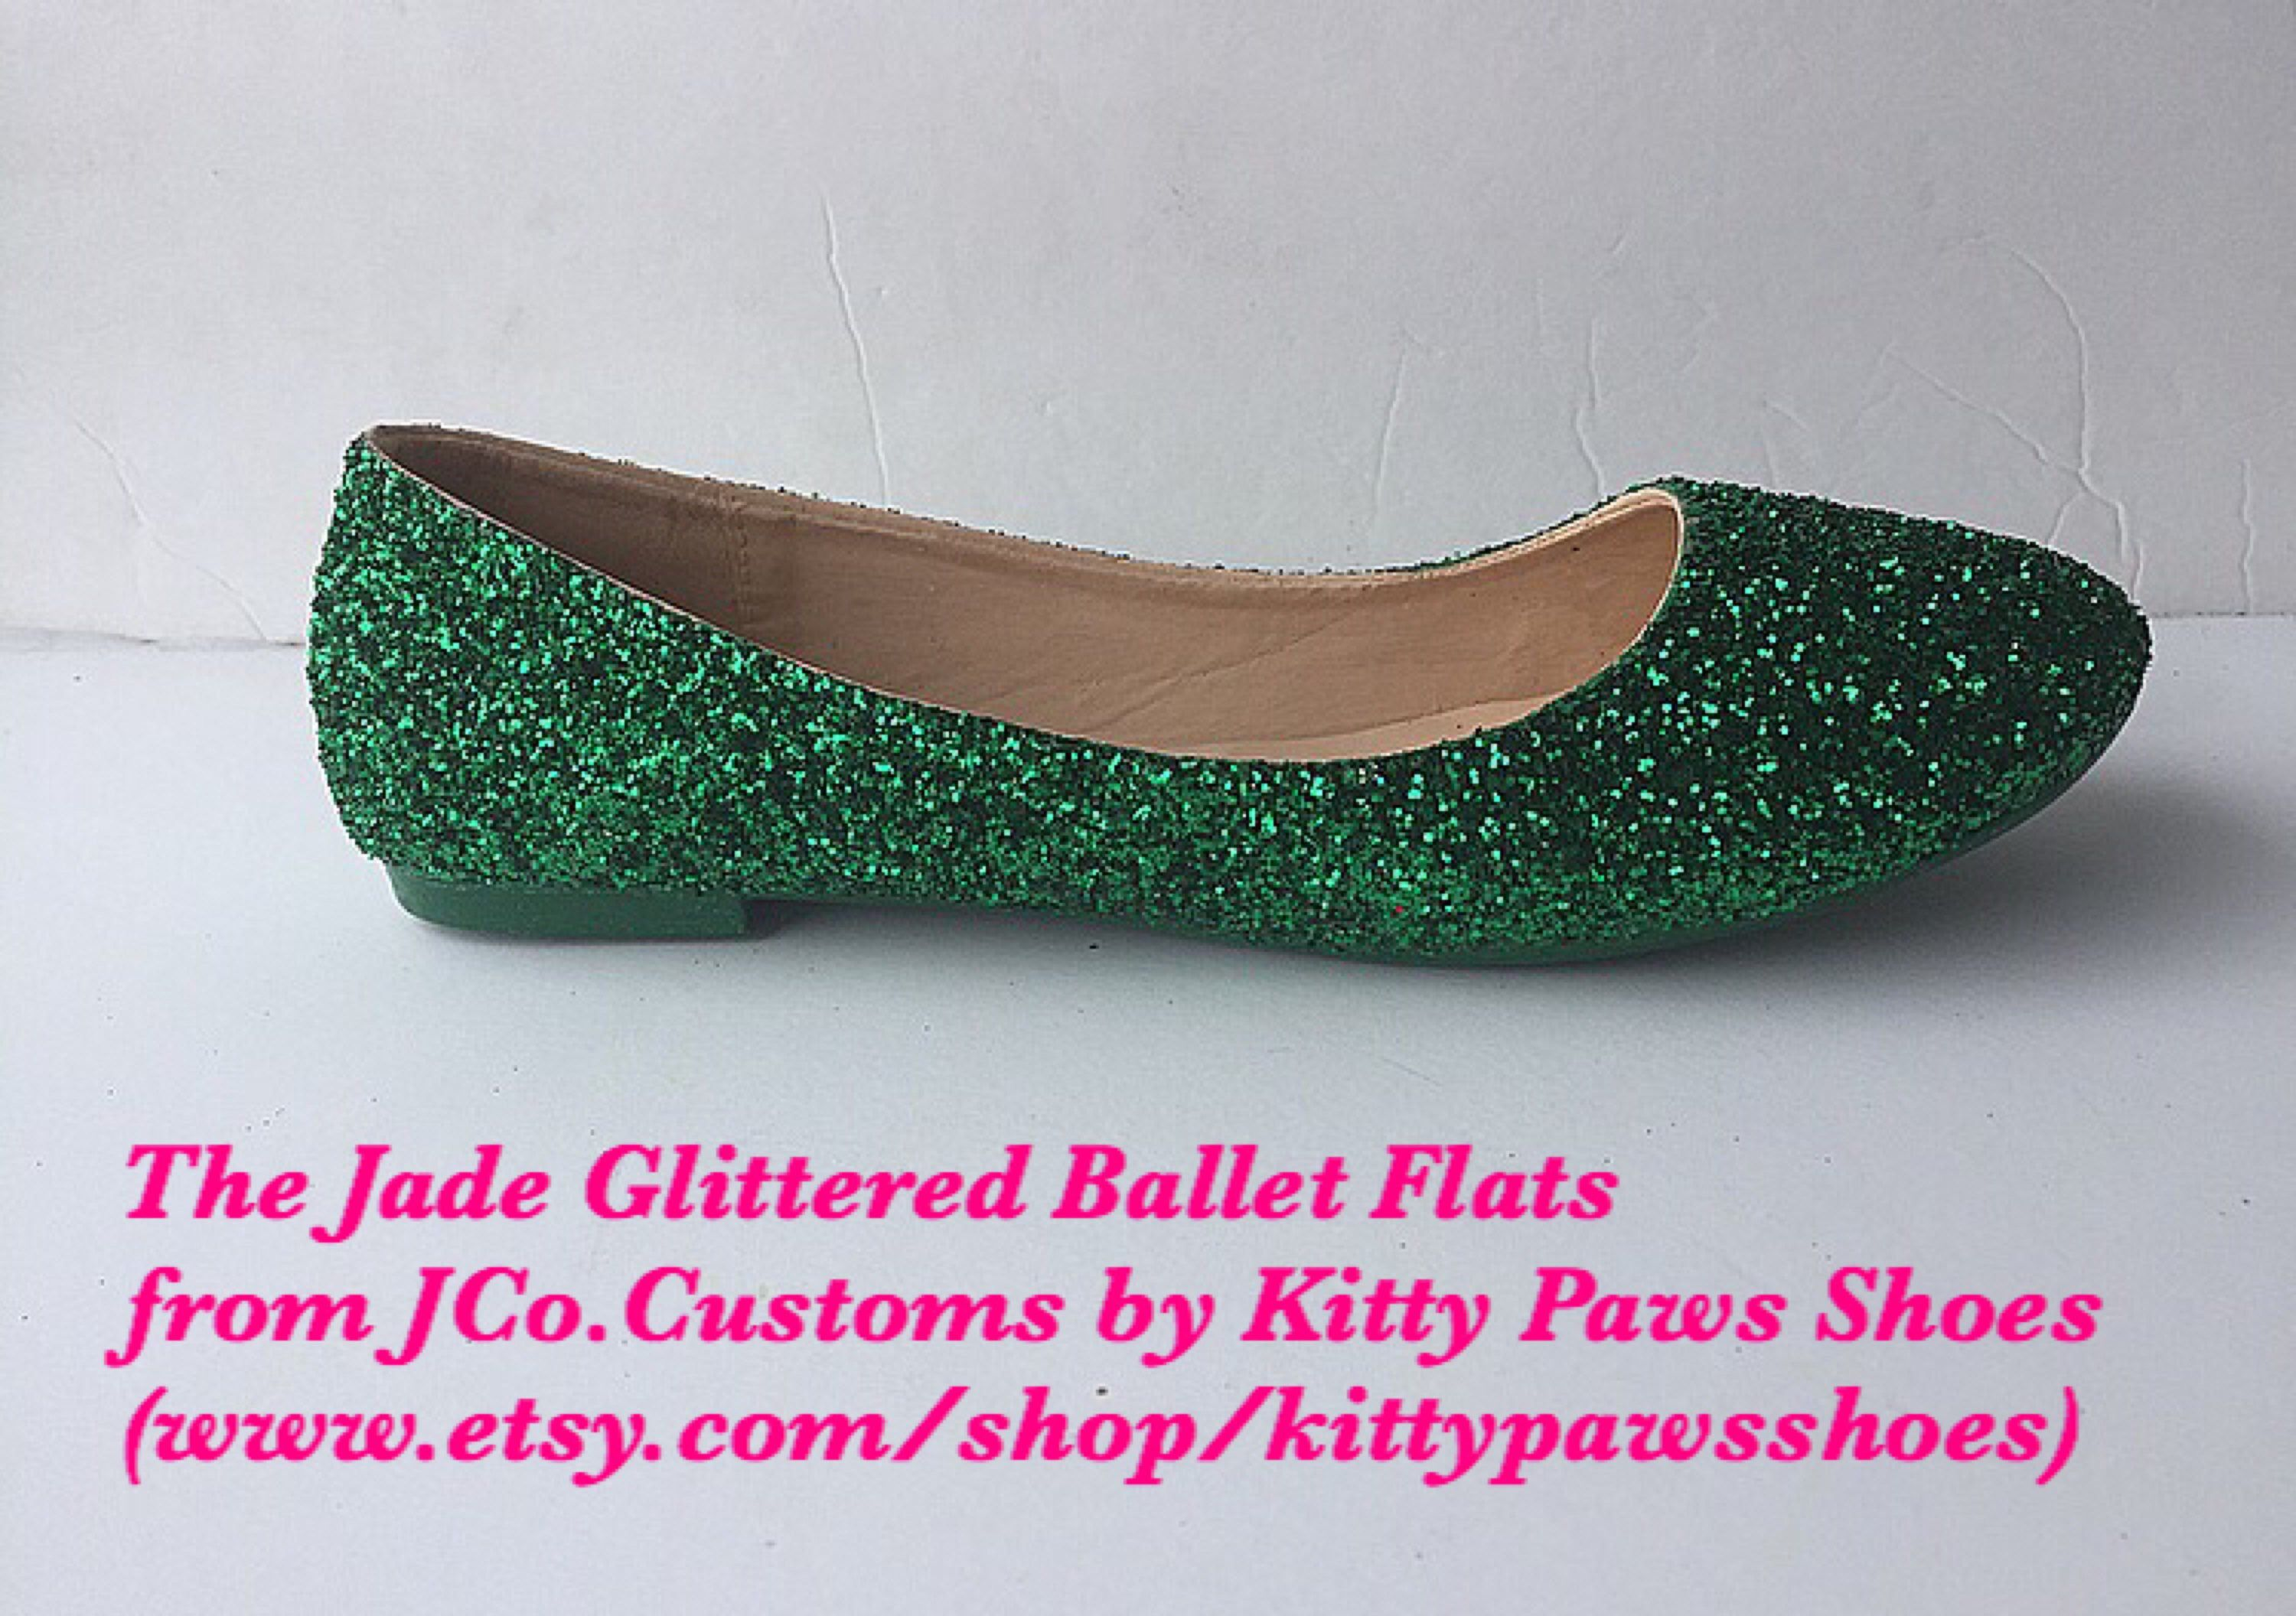 814ec043ba7 Excited to share this item from my  etsy shop  Women s Holiday Christmas  Birthday Casual Fall Dark Green Jade Emerald Glittered Ballet Flats from  JCo.